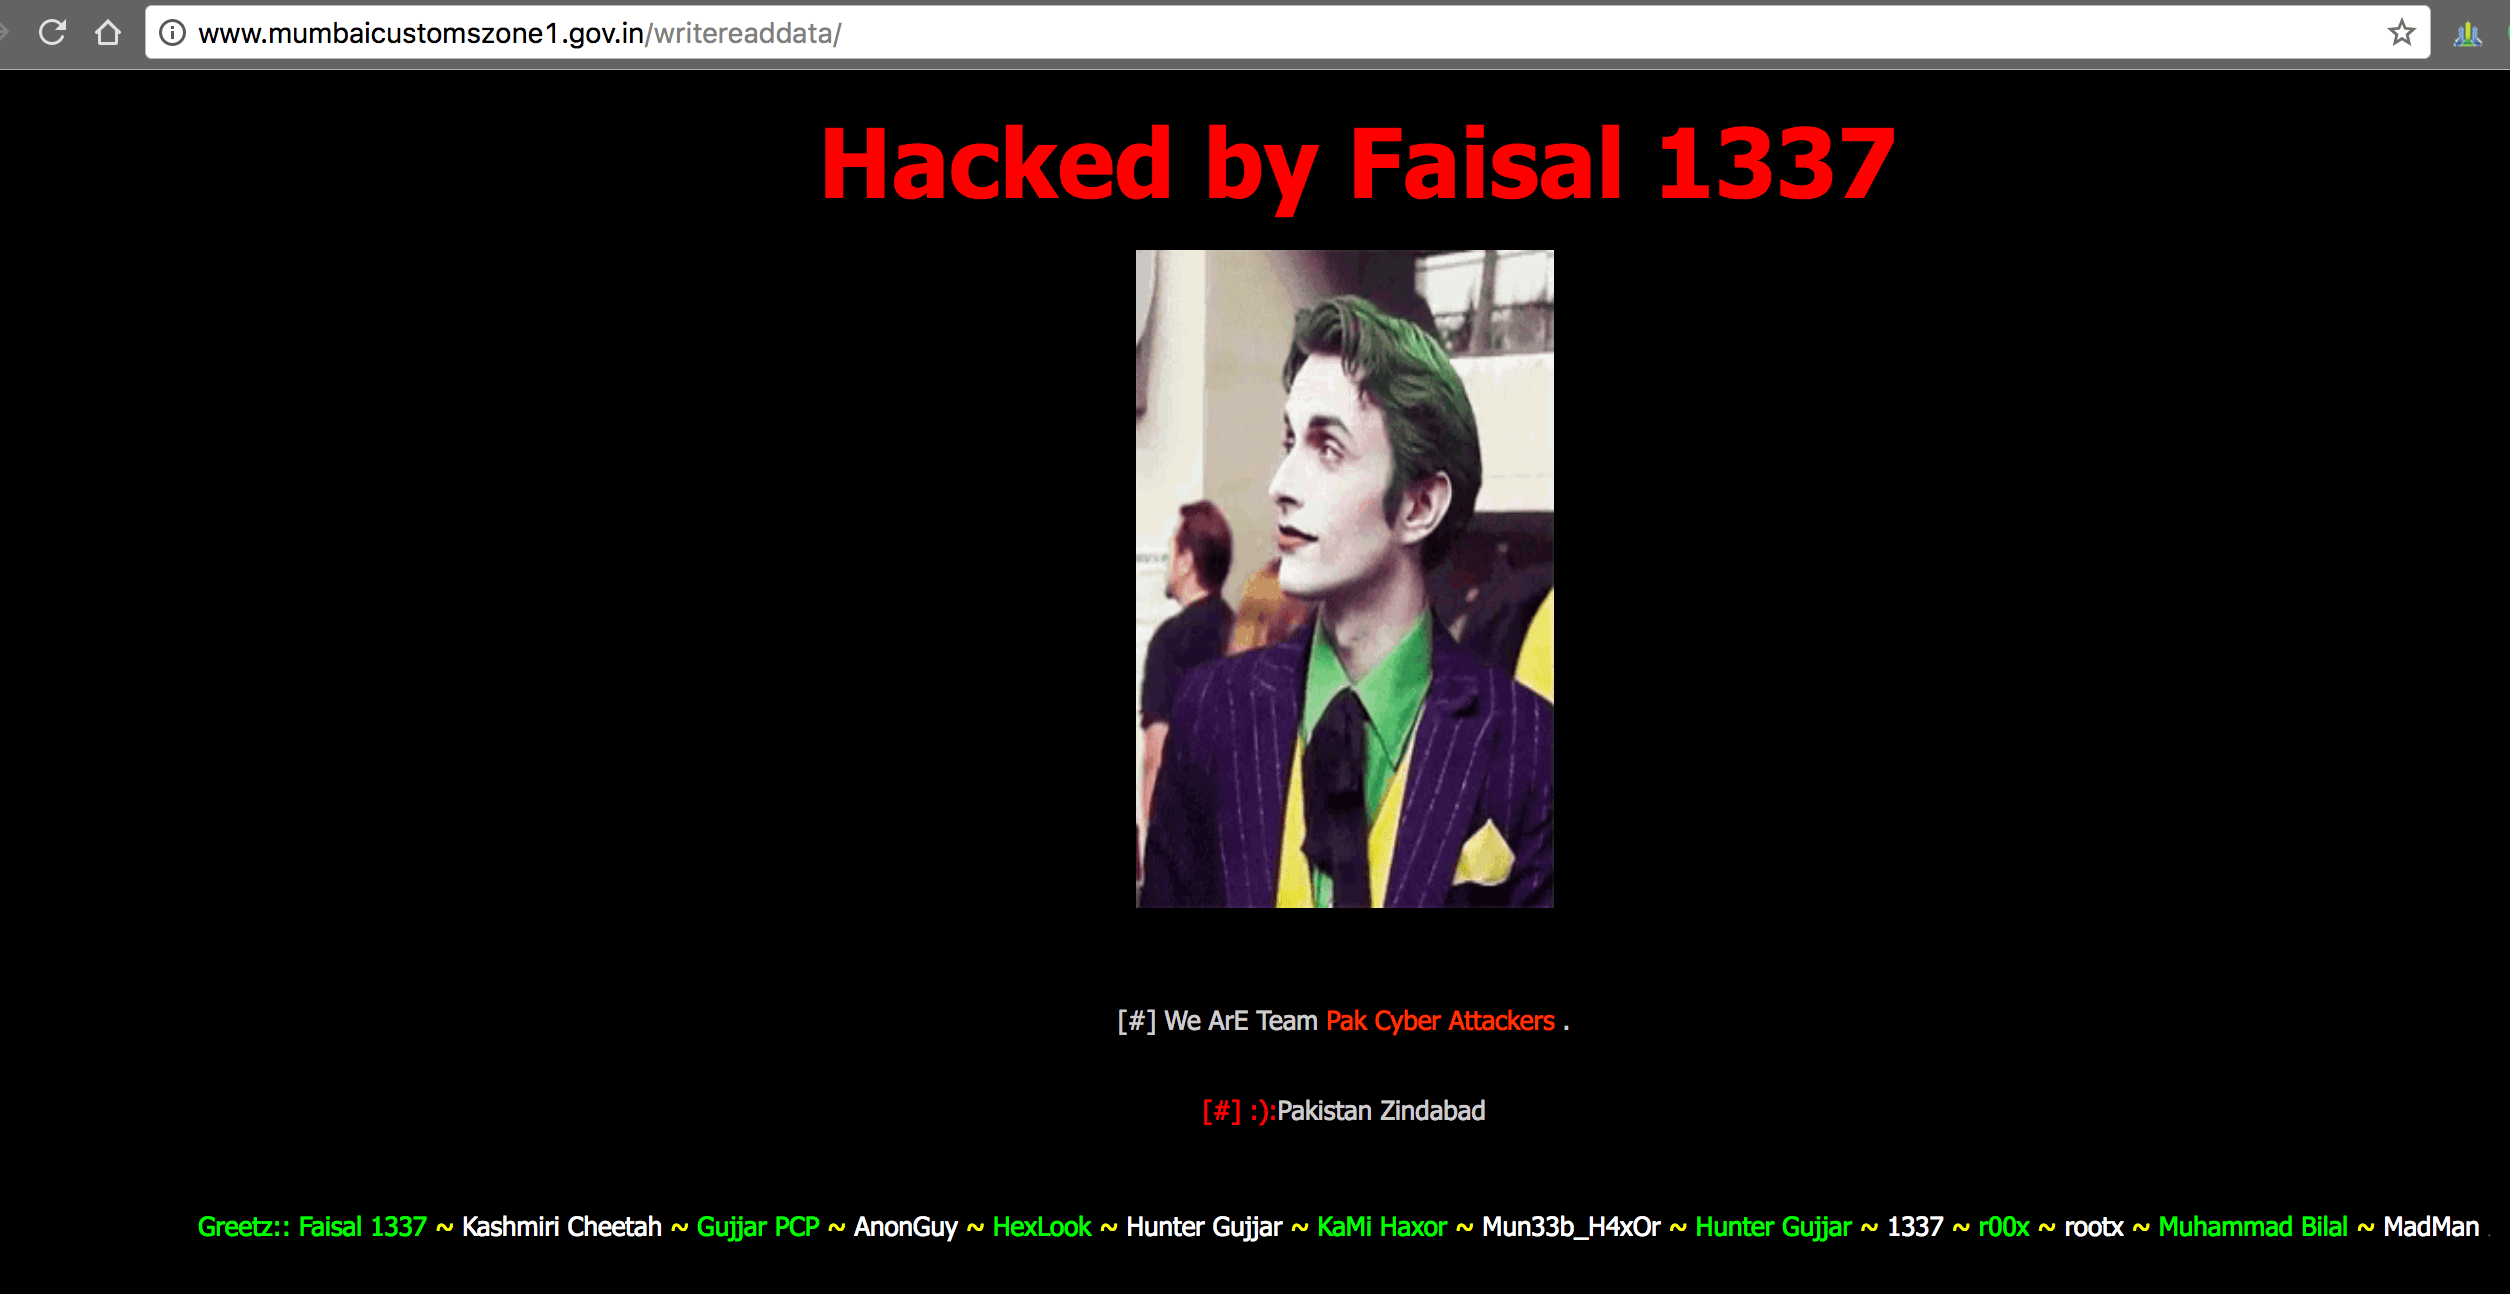 Mumbai Customs Zone 1 Government of India Hacked